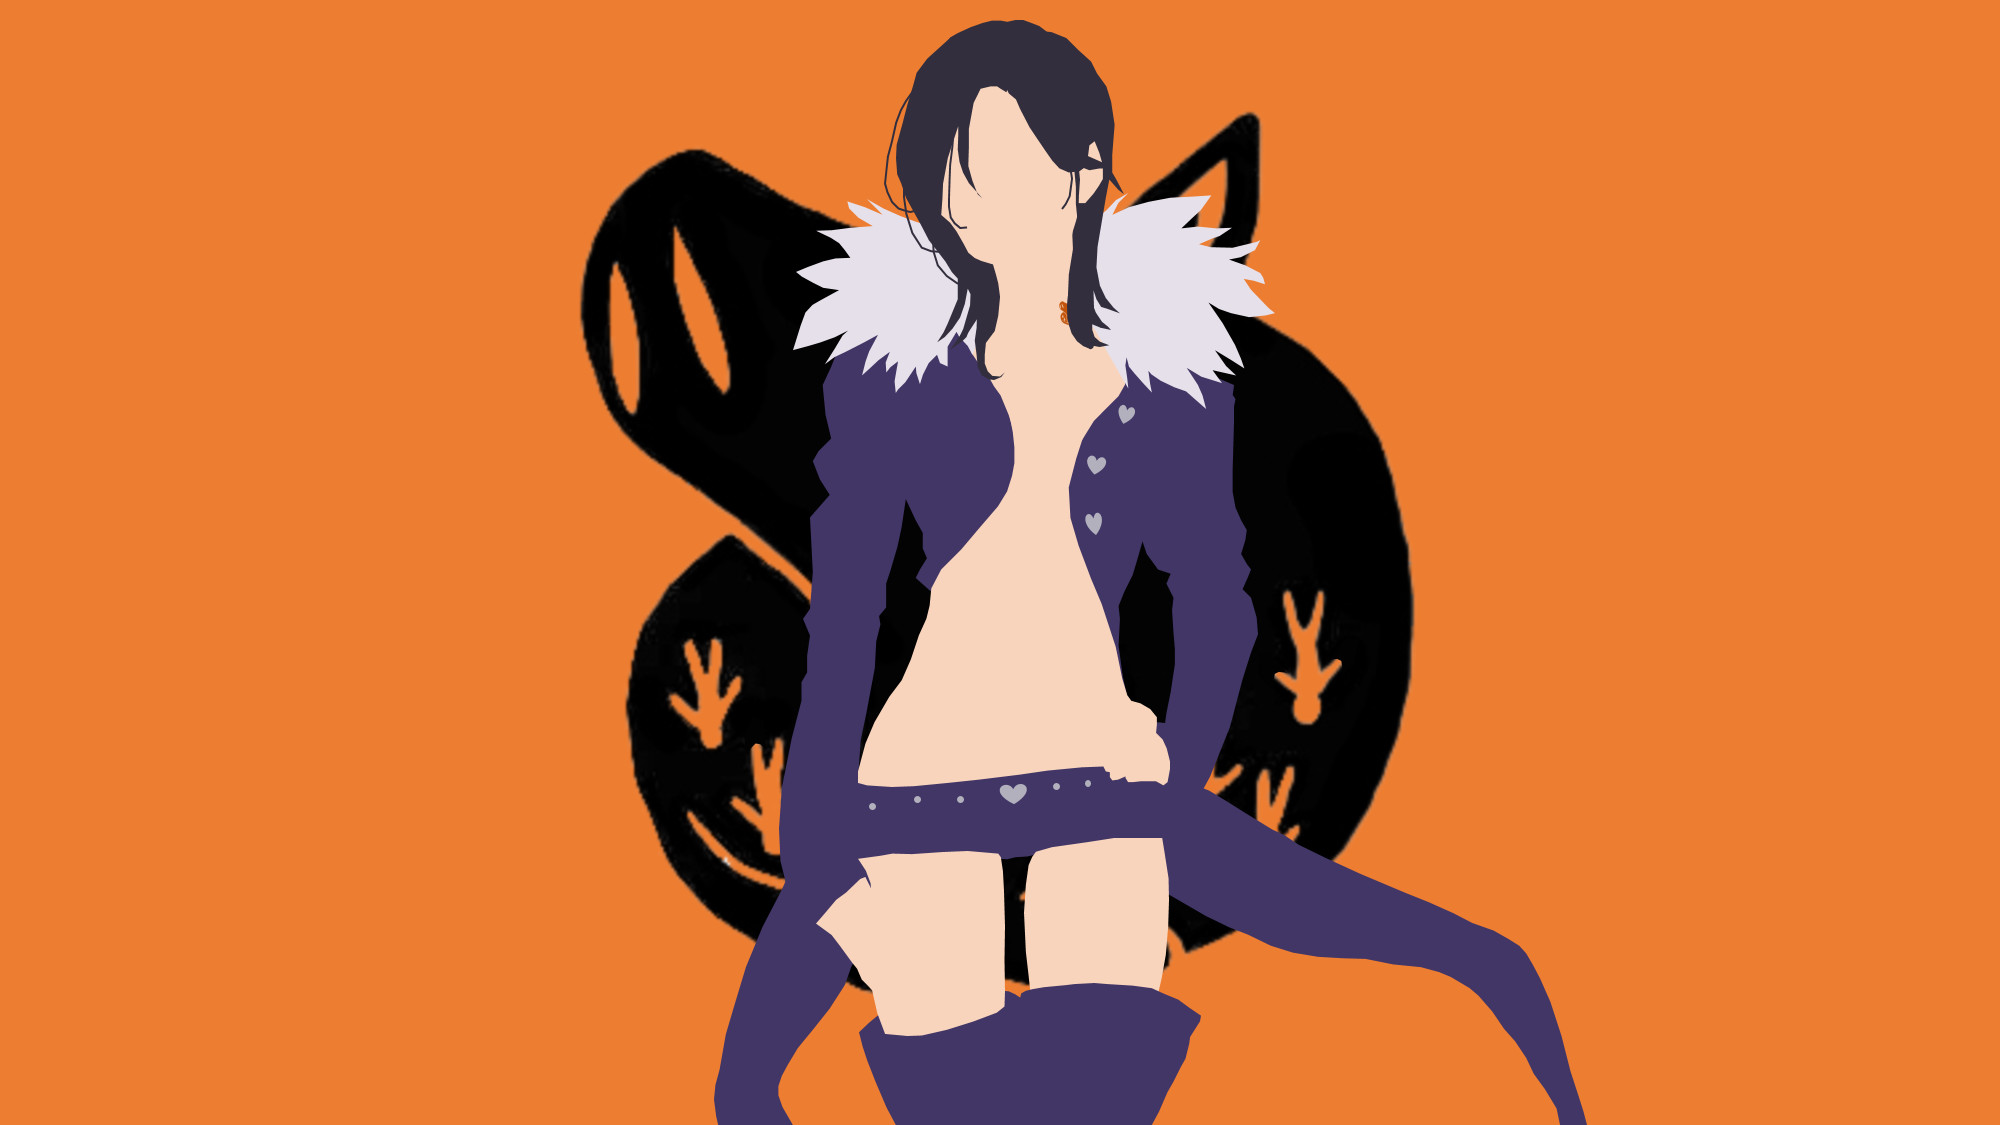 Gowther from Seven Deadly Sins by Reverendtundra | Minimalism | Pinterest |  Anime, Manga and Otaku